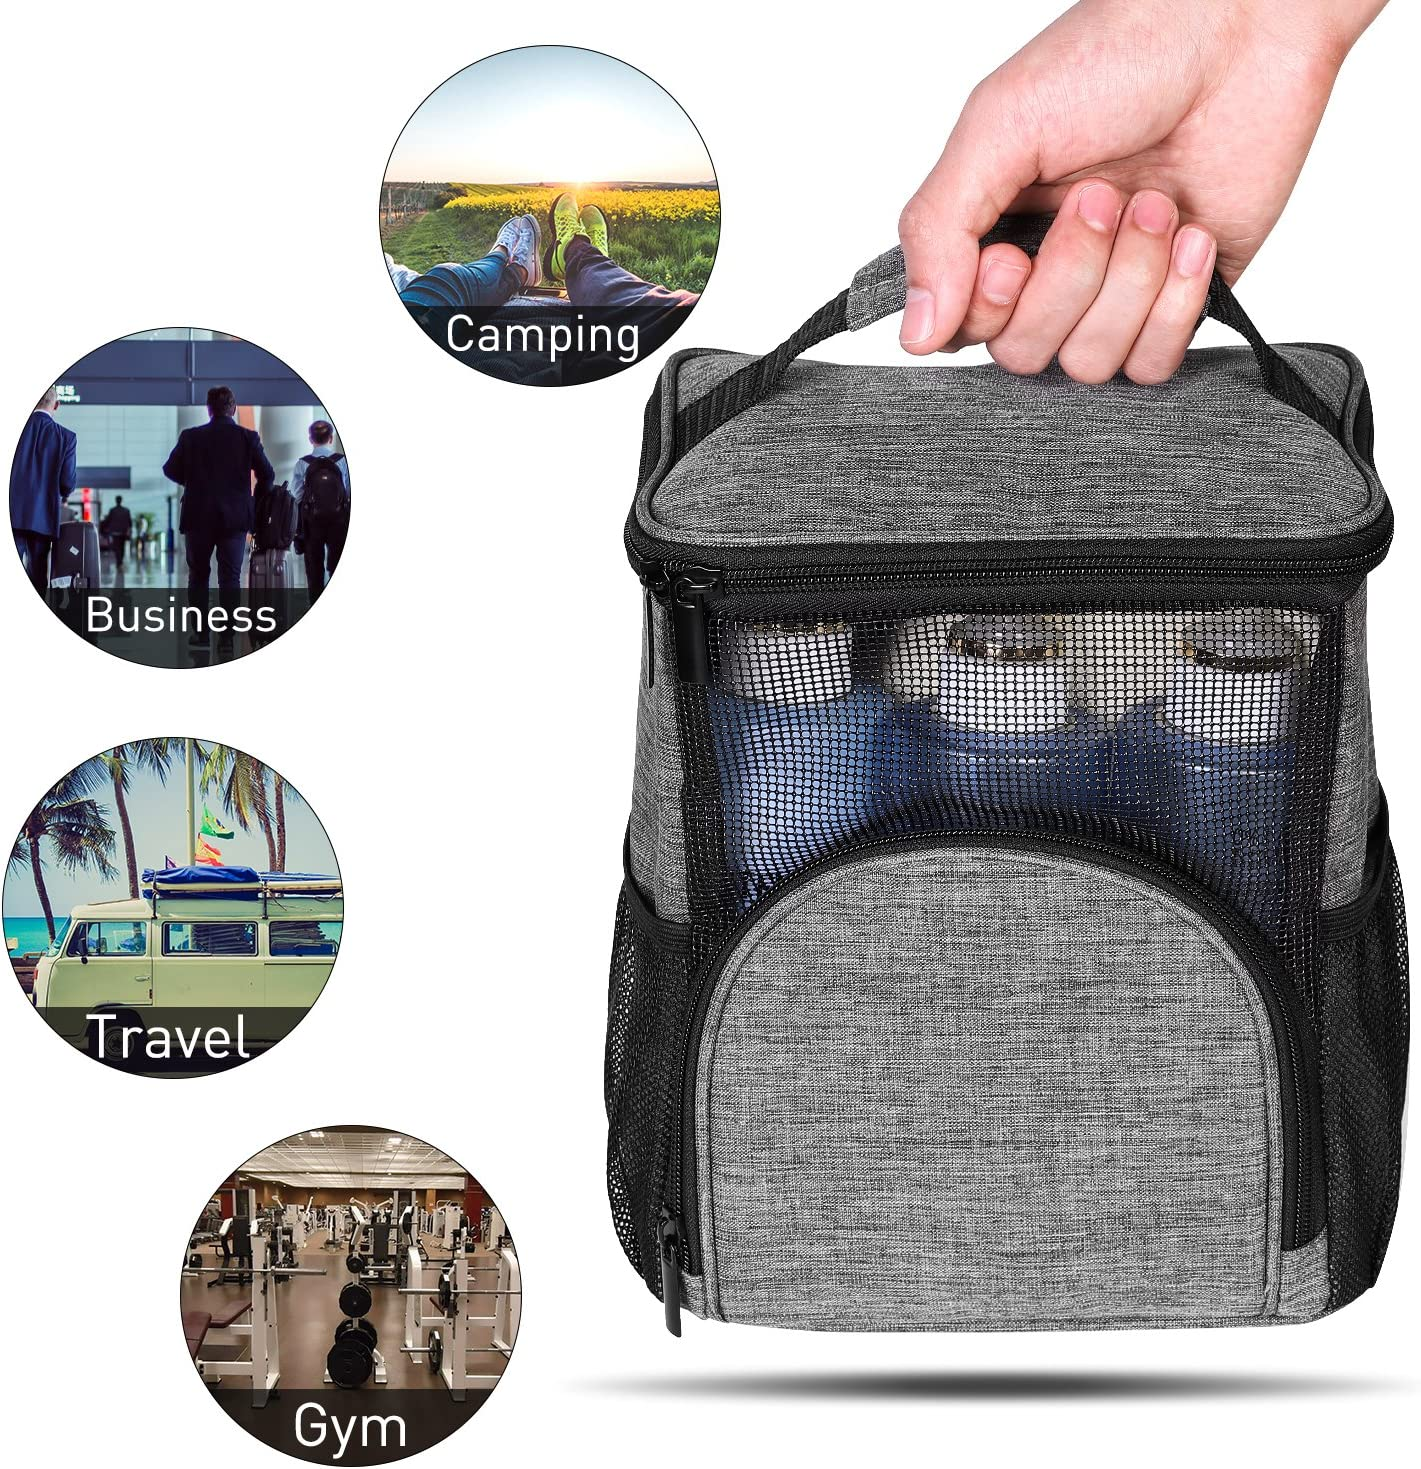 Blue Camp Women Men Hanging Toiletry Bag,Bath Organizer with Quick Dry Technology Gym KUSOOFA Shower Caddy Tote Bag Bath Organizer for College Dorms